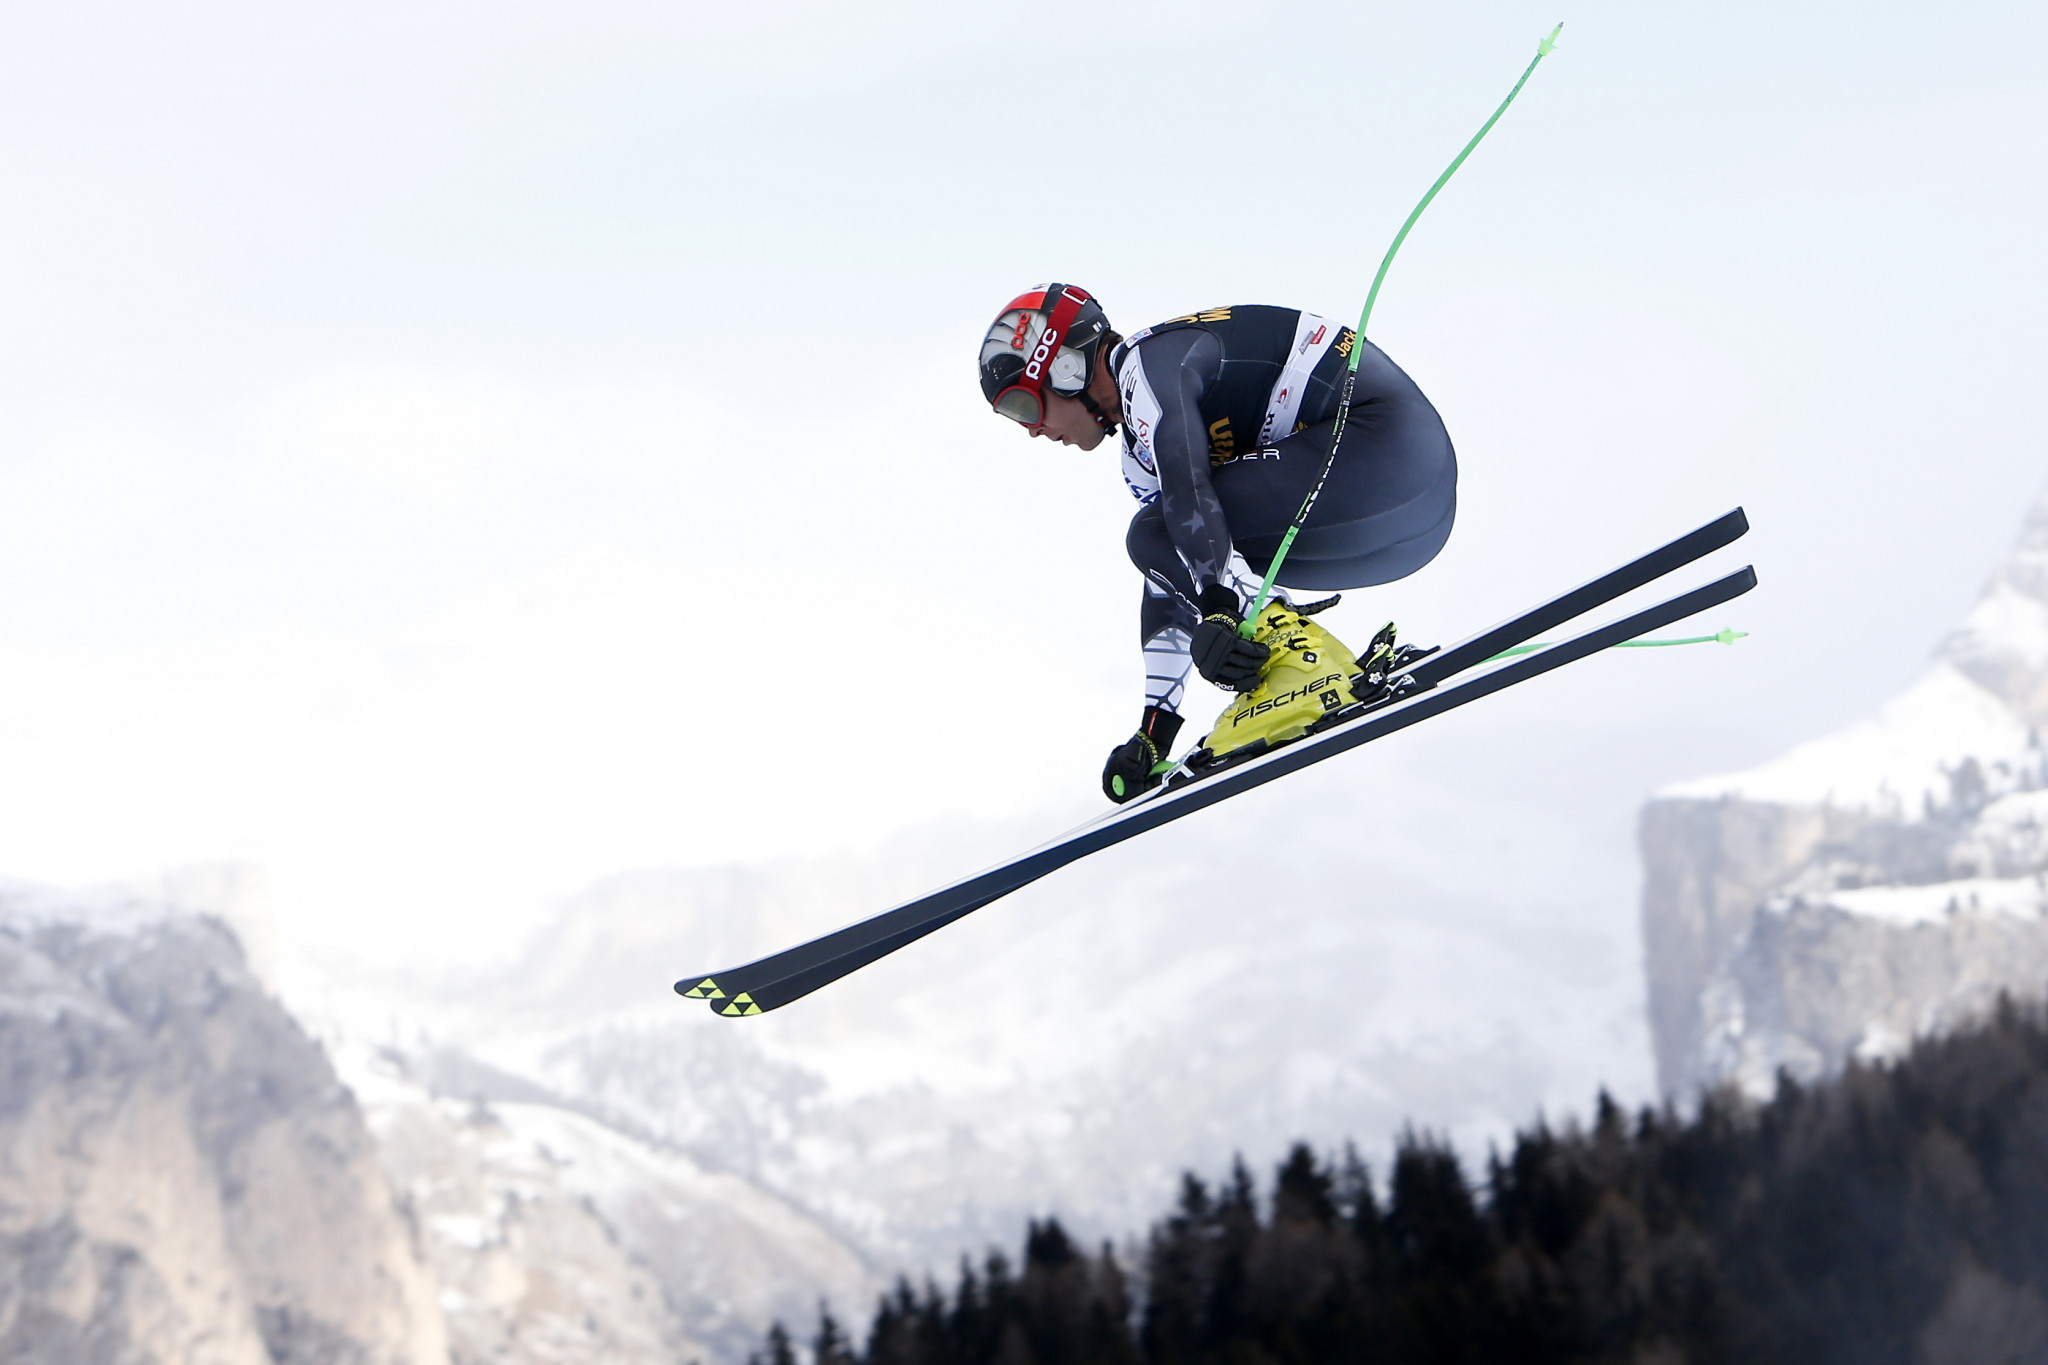 Steven Nyman of the United States - whose three World Cup career wins have come in the downhill at the Val Gardena venue - was second in today's training run ©Getty Images